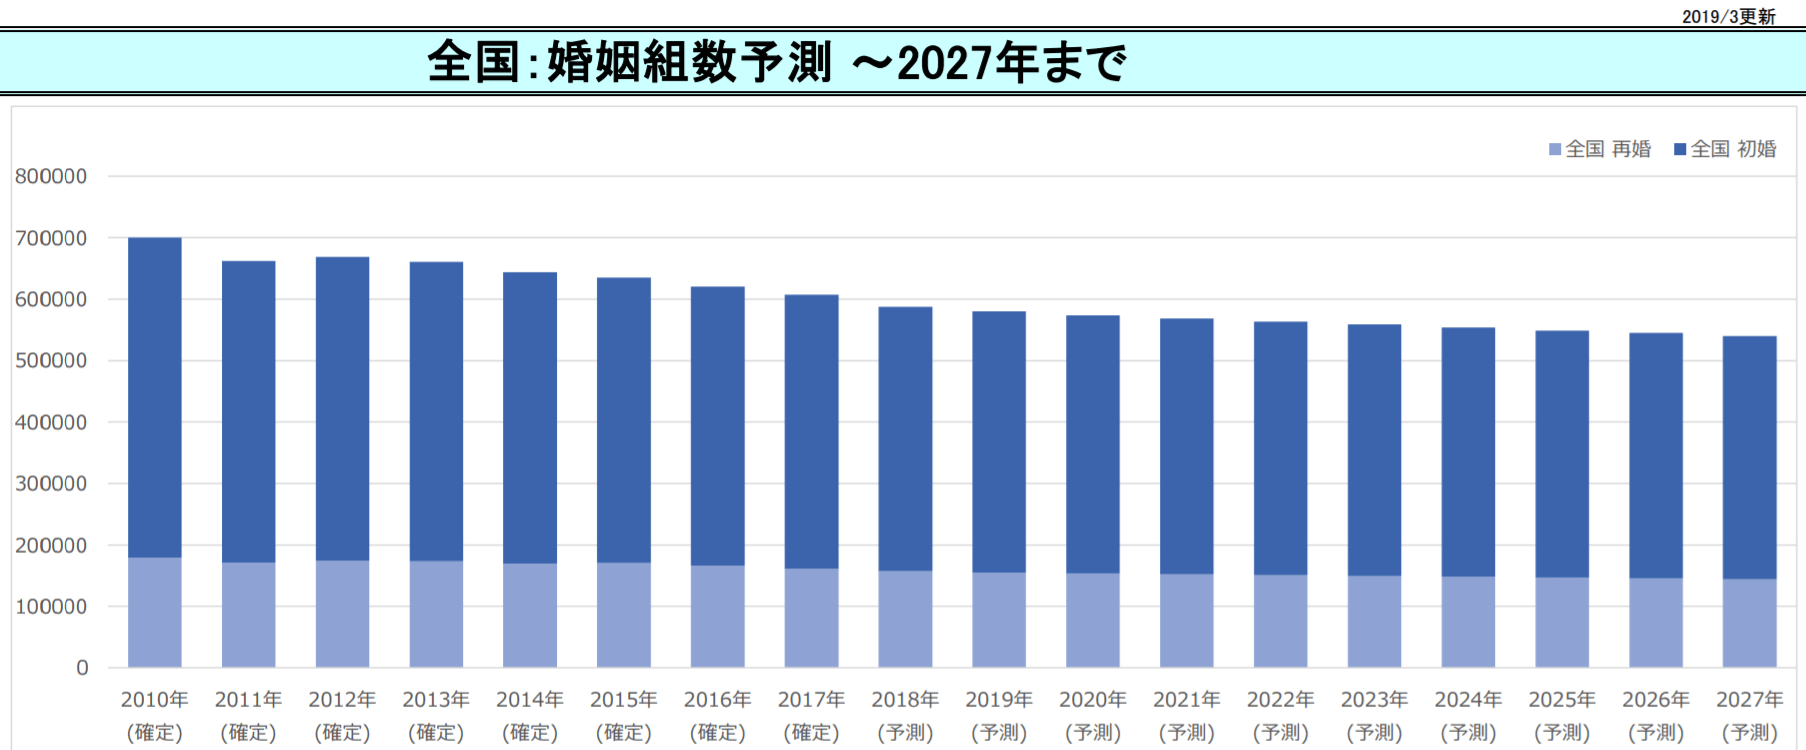 number-ofmarriage-forecast-japan